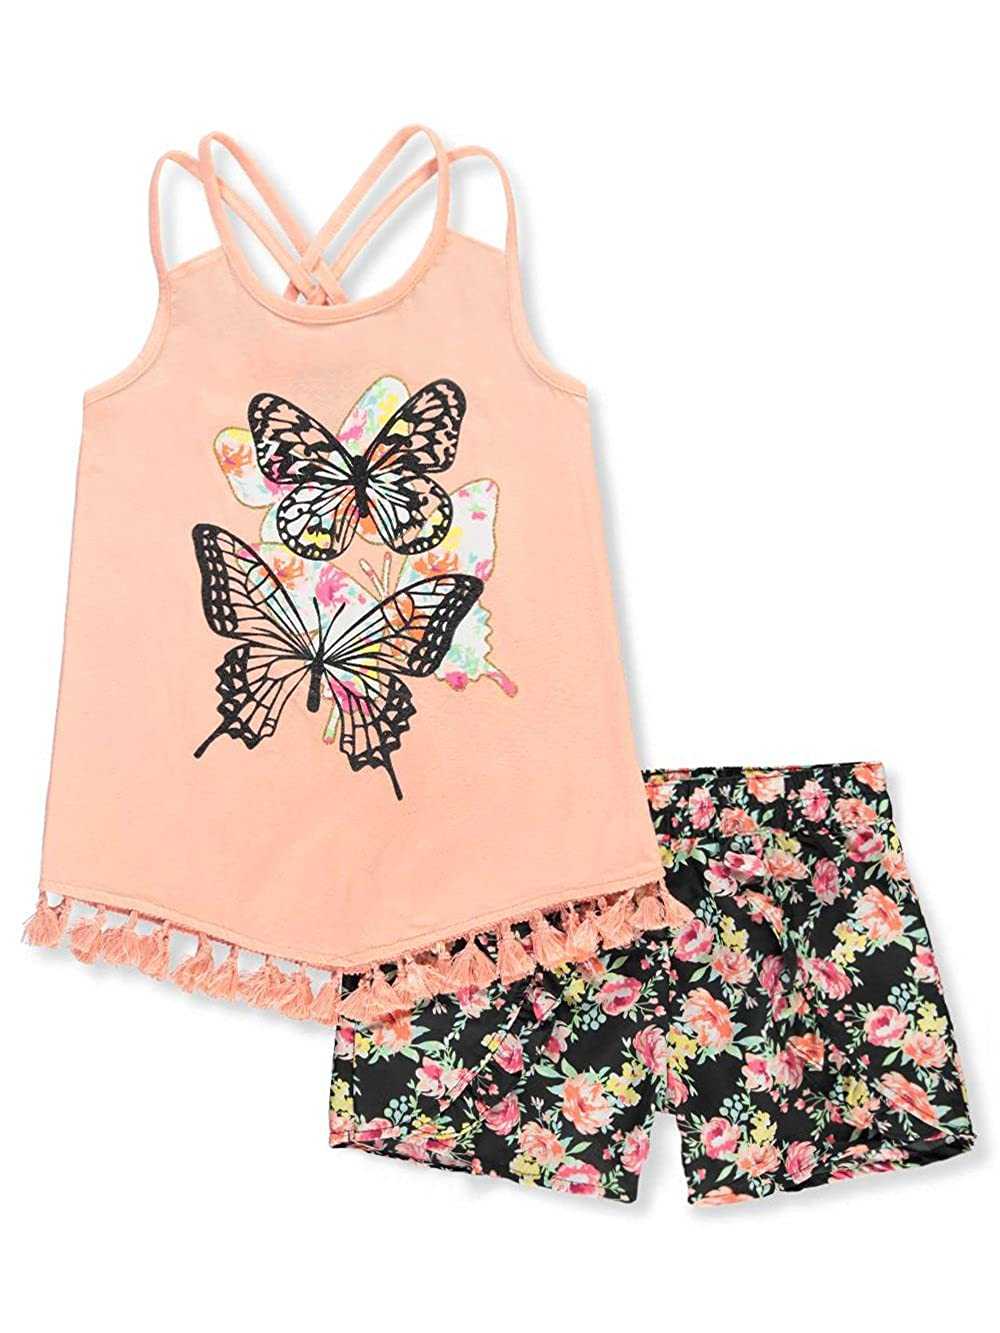 dollhouse Girls' 2-Piece Short Set Outfit 7-8